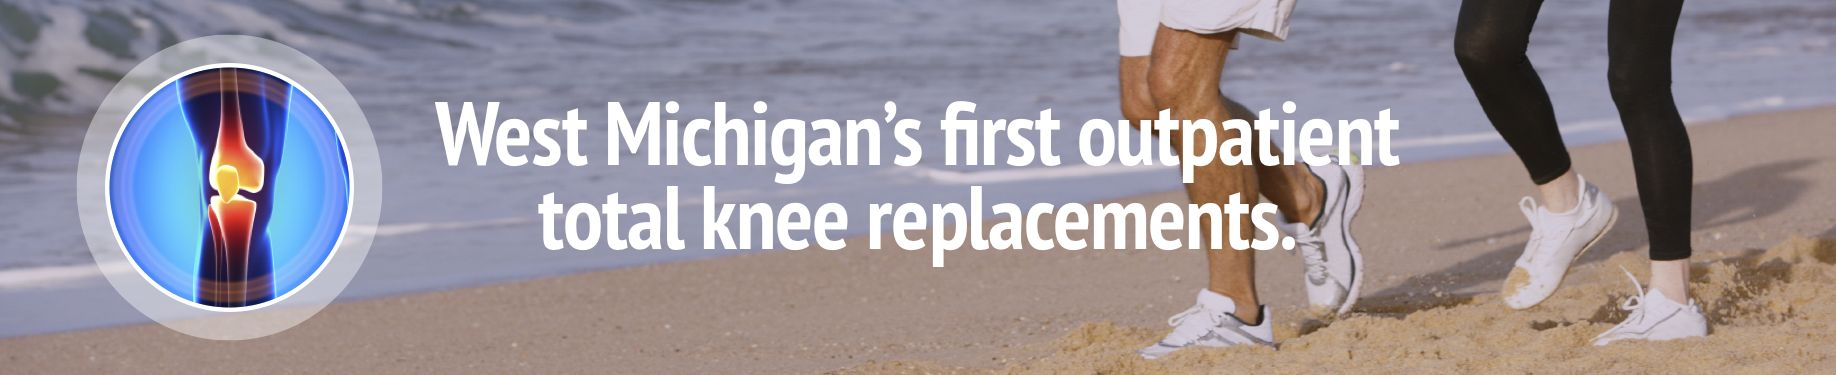 For all of your knee care needs in the Muskegon & Grand Haven, MI areas be sure to contact the experts at Orthopaedic Associates of Muskegon!